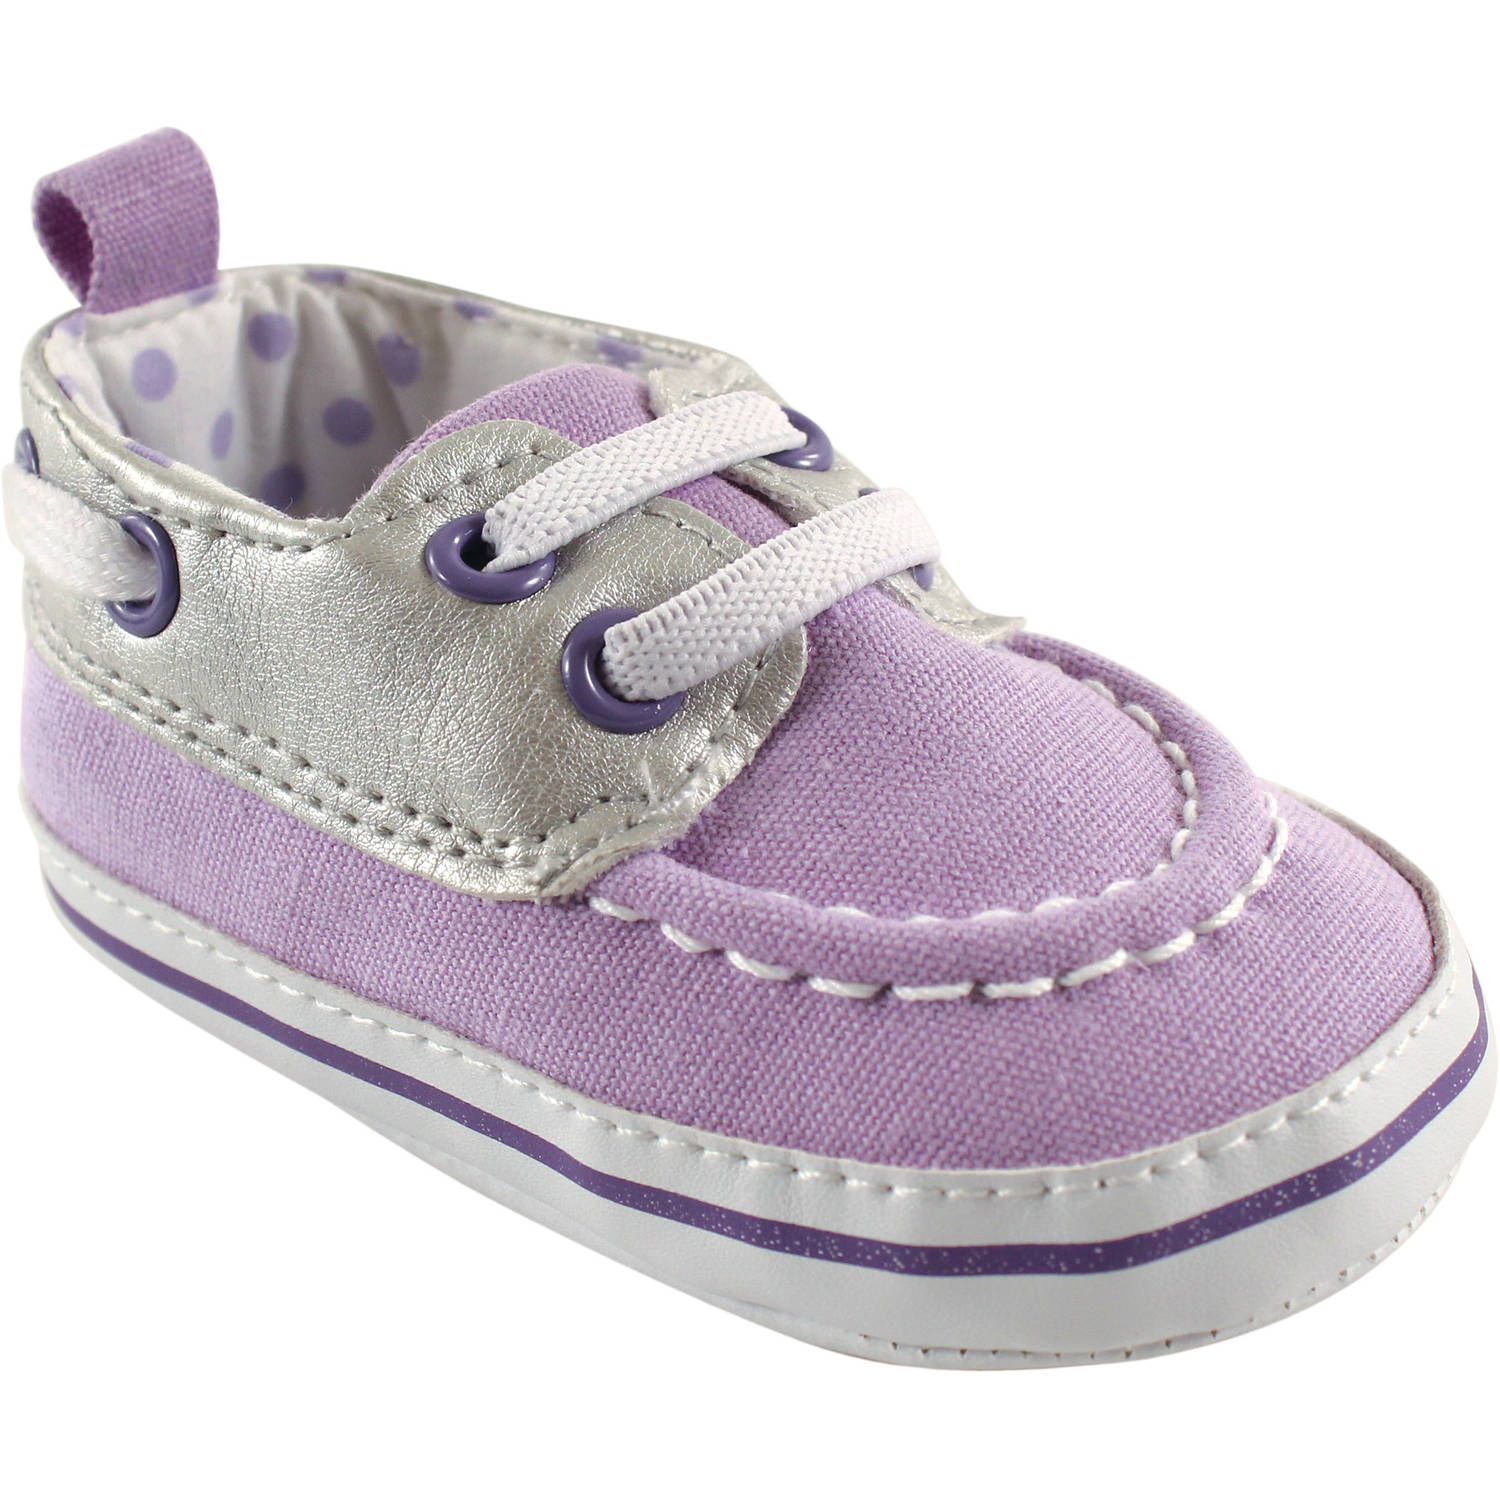 Luvable Friends Newborn Baby Girls Boat Shoes